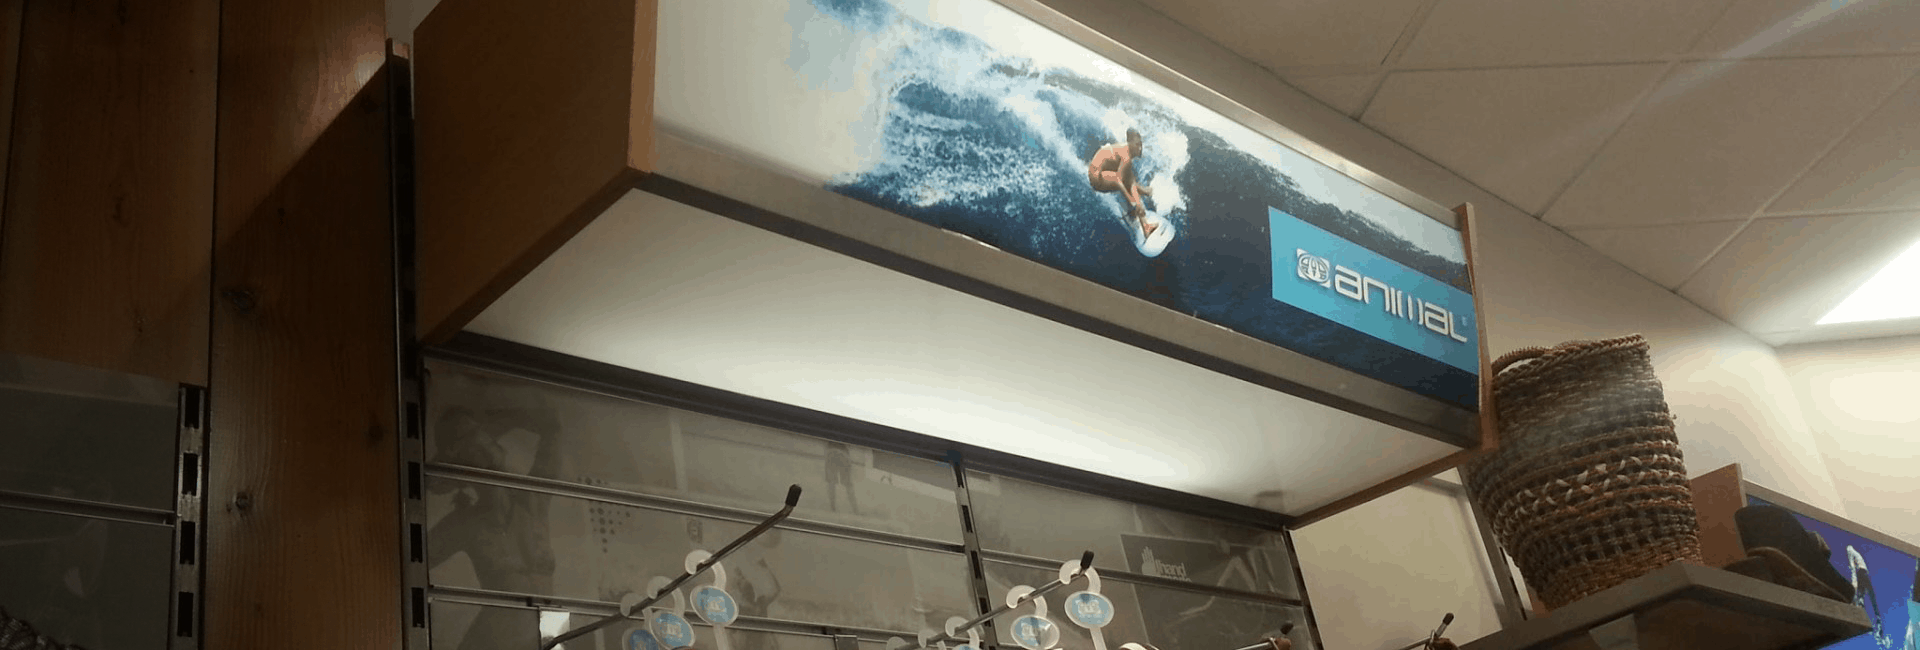 Shoplifting in a surf retailer